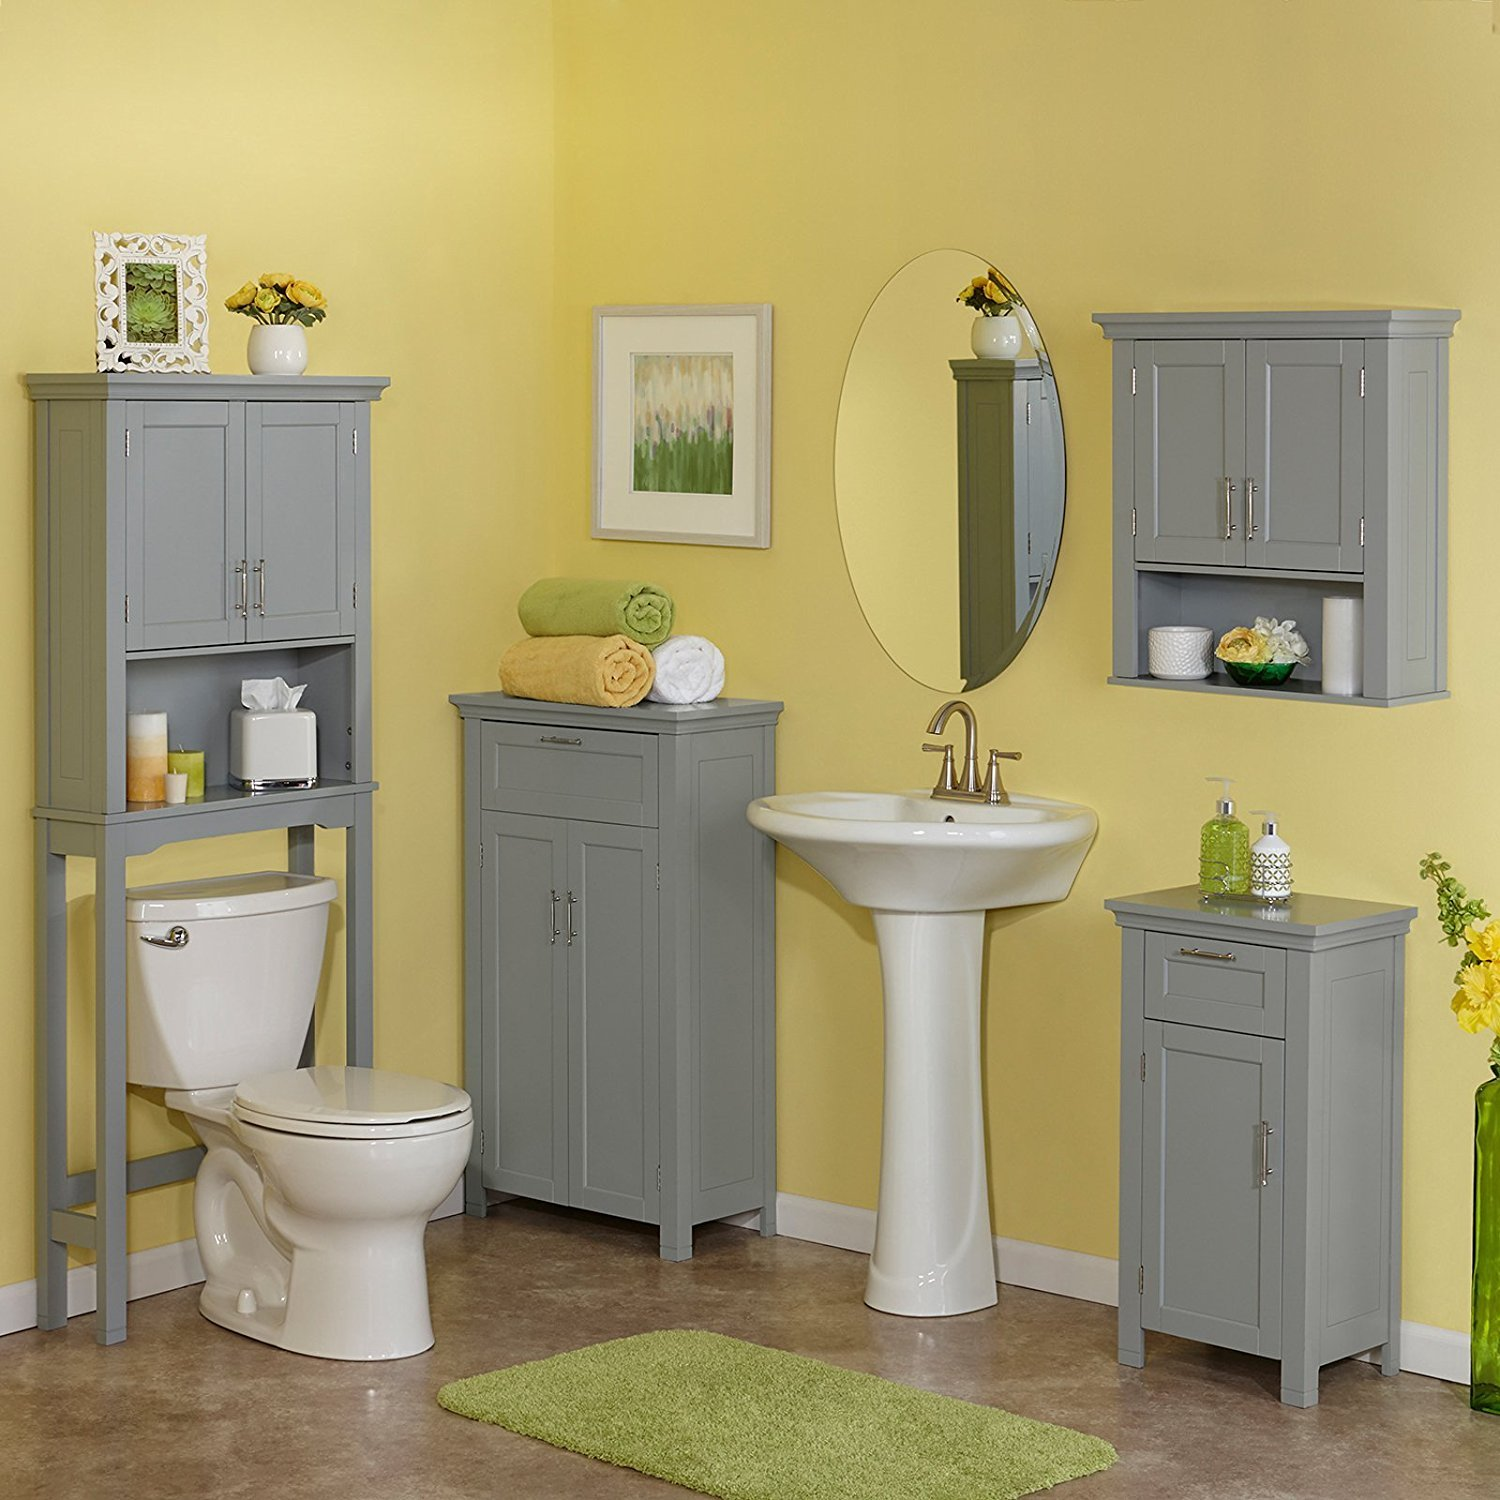 Amazon Two Door Floor Bathroom Cabinet in Gray Home Improvement